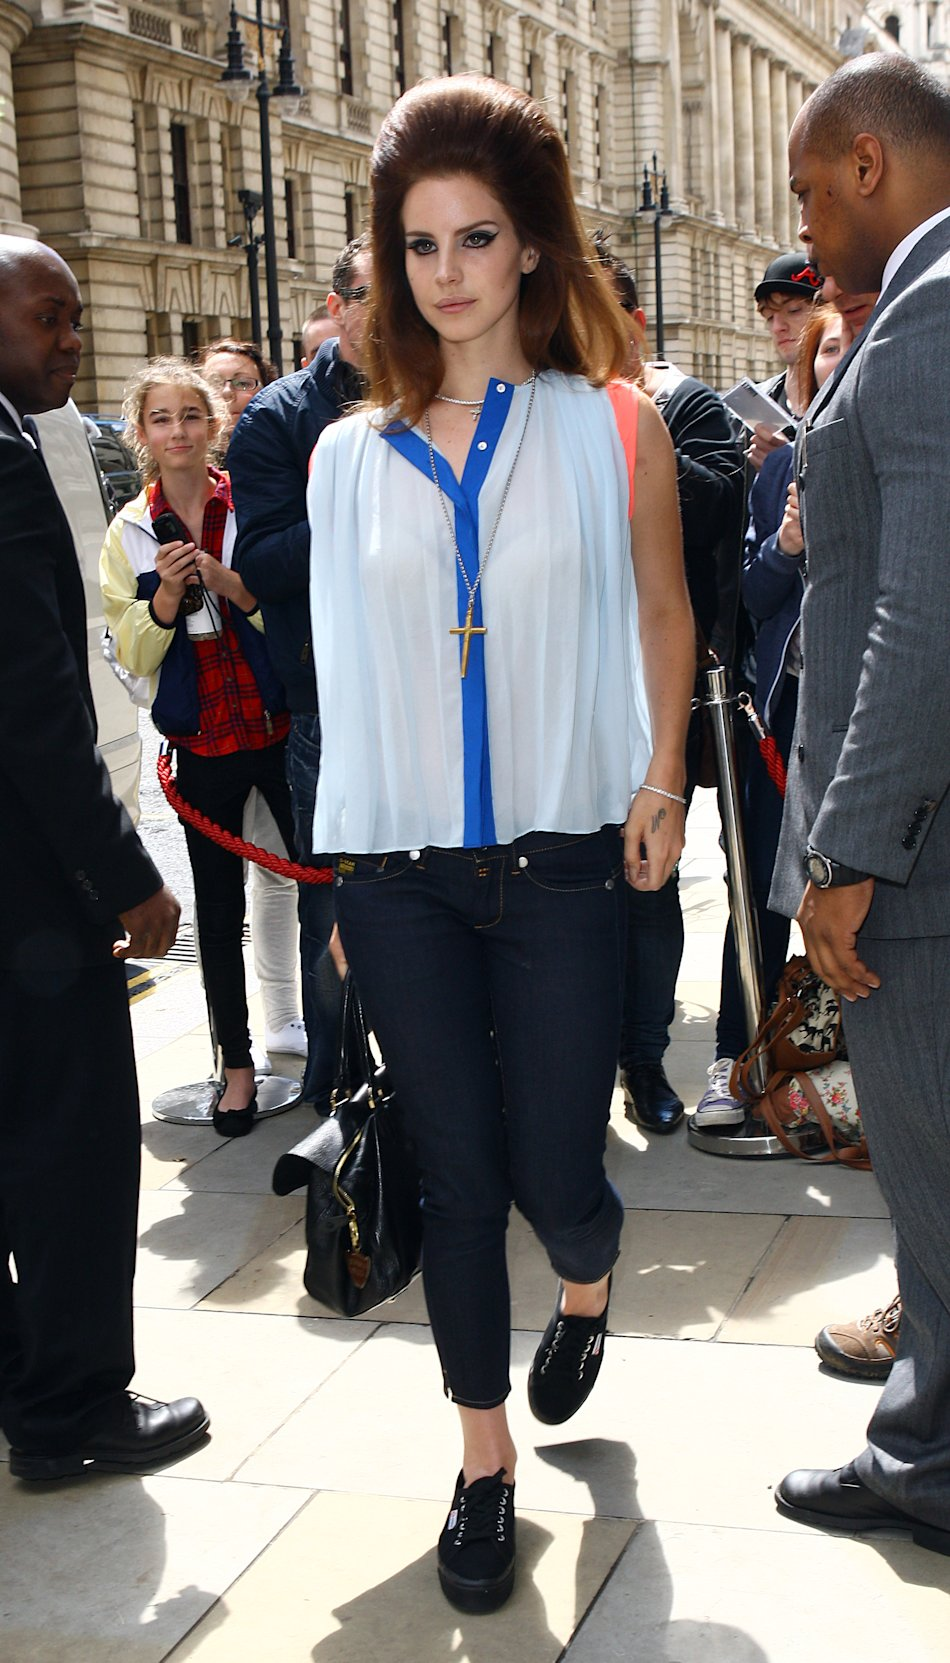 Here's Lana del Rey in London on June 24 with a serious clothes departure from her usual glammed-up ensembles, save for her big hair and dramatic make-up, thank goodness. Her neon-accented Sandro top,